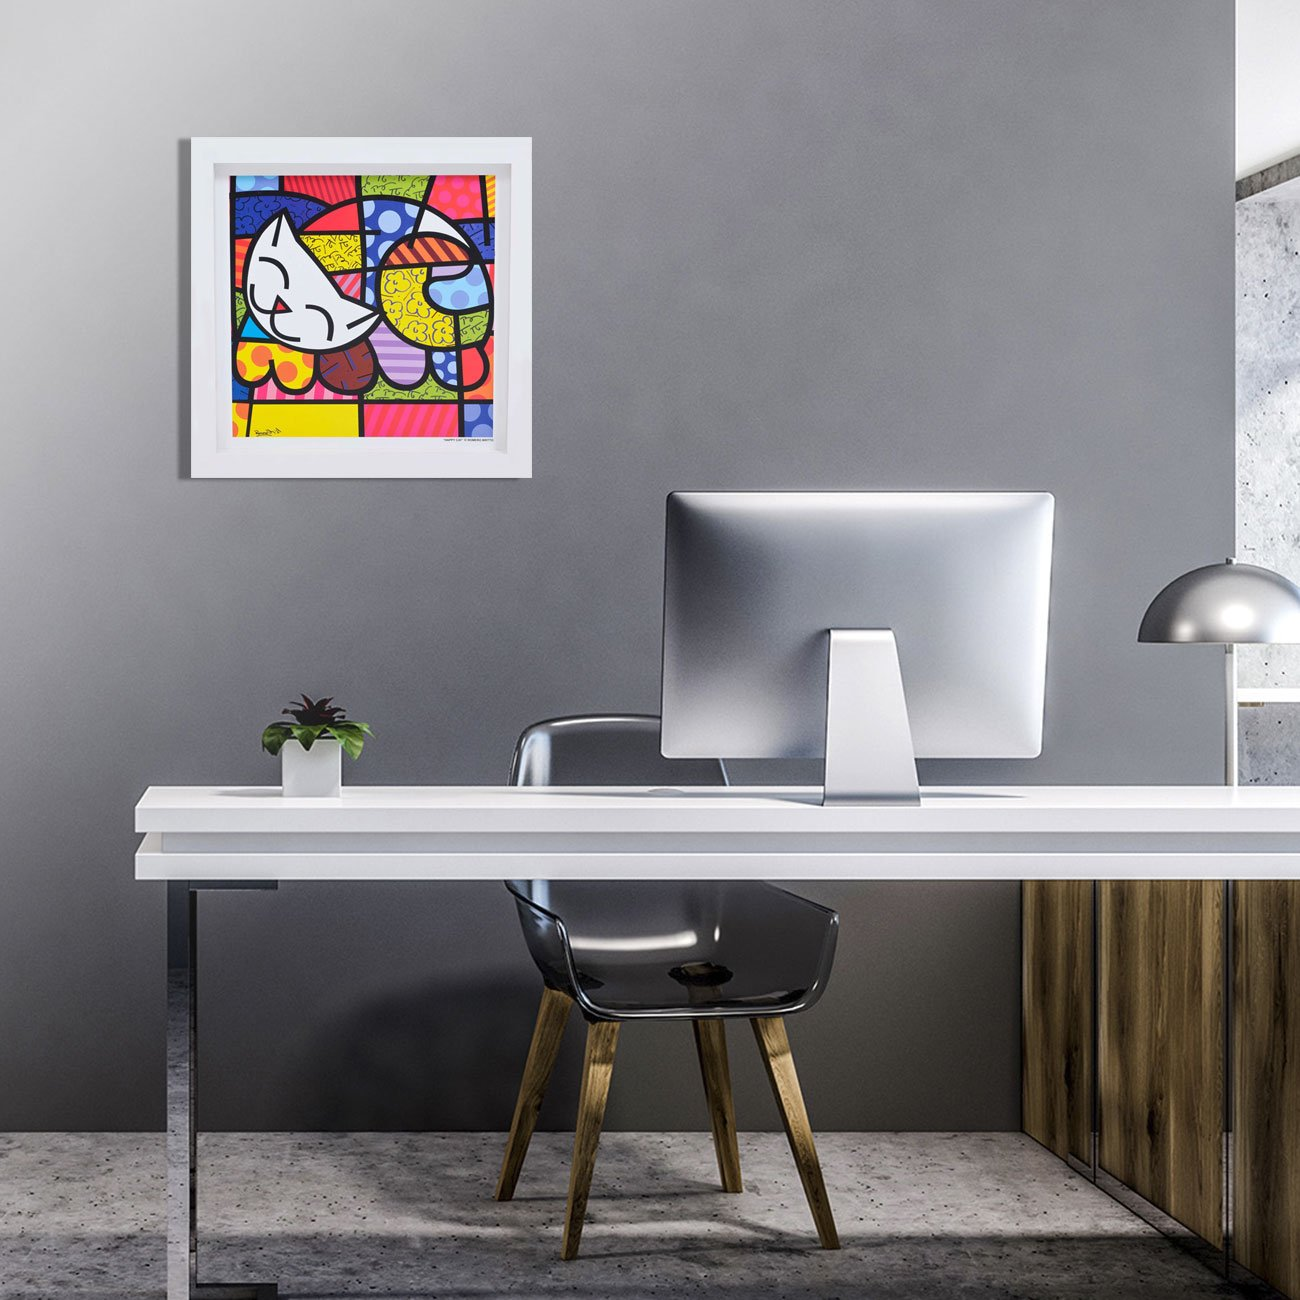 Quadro Romero Britto com gravura original Happy Cat.